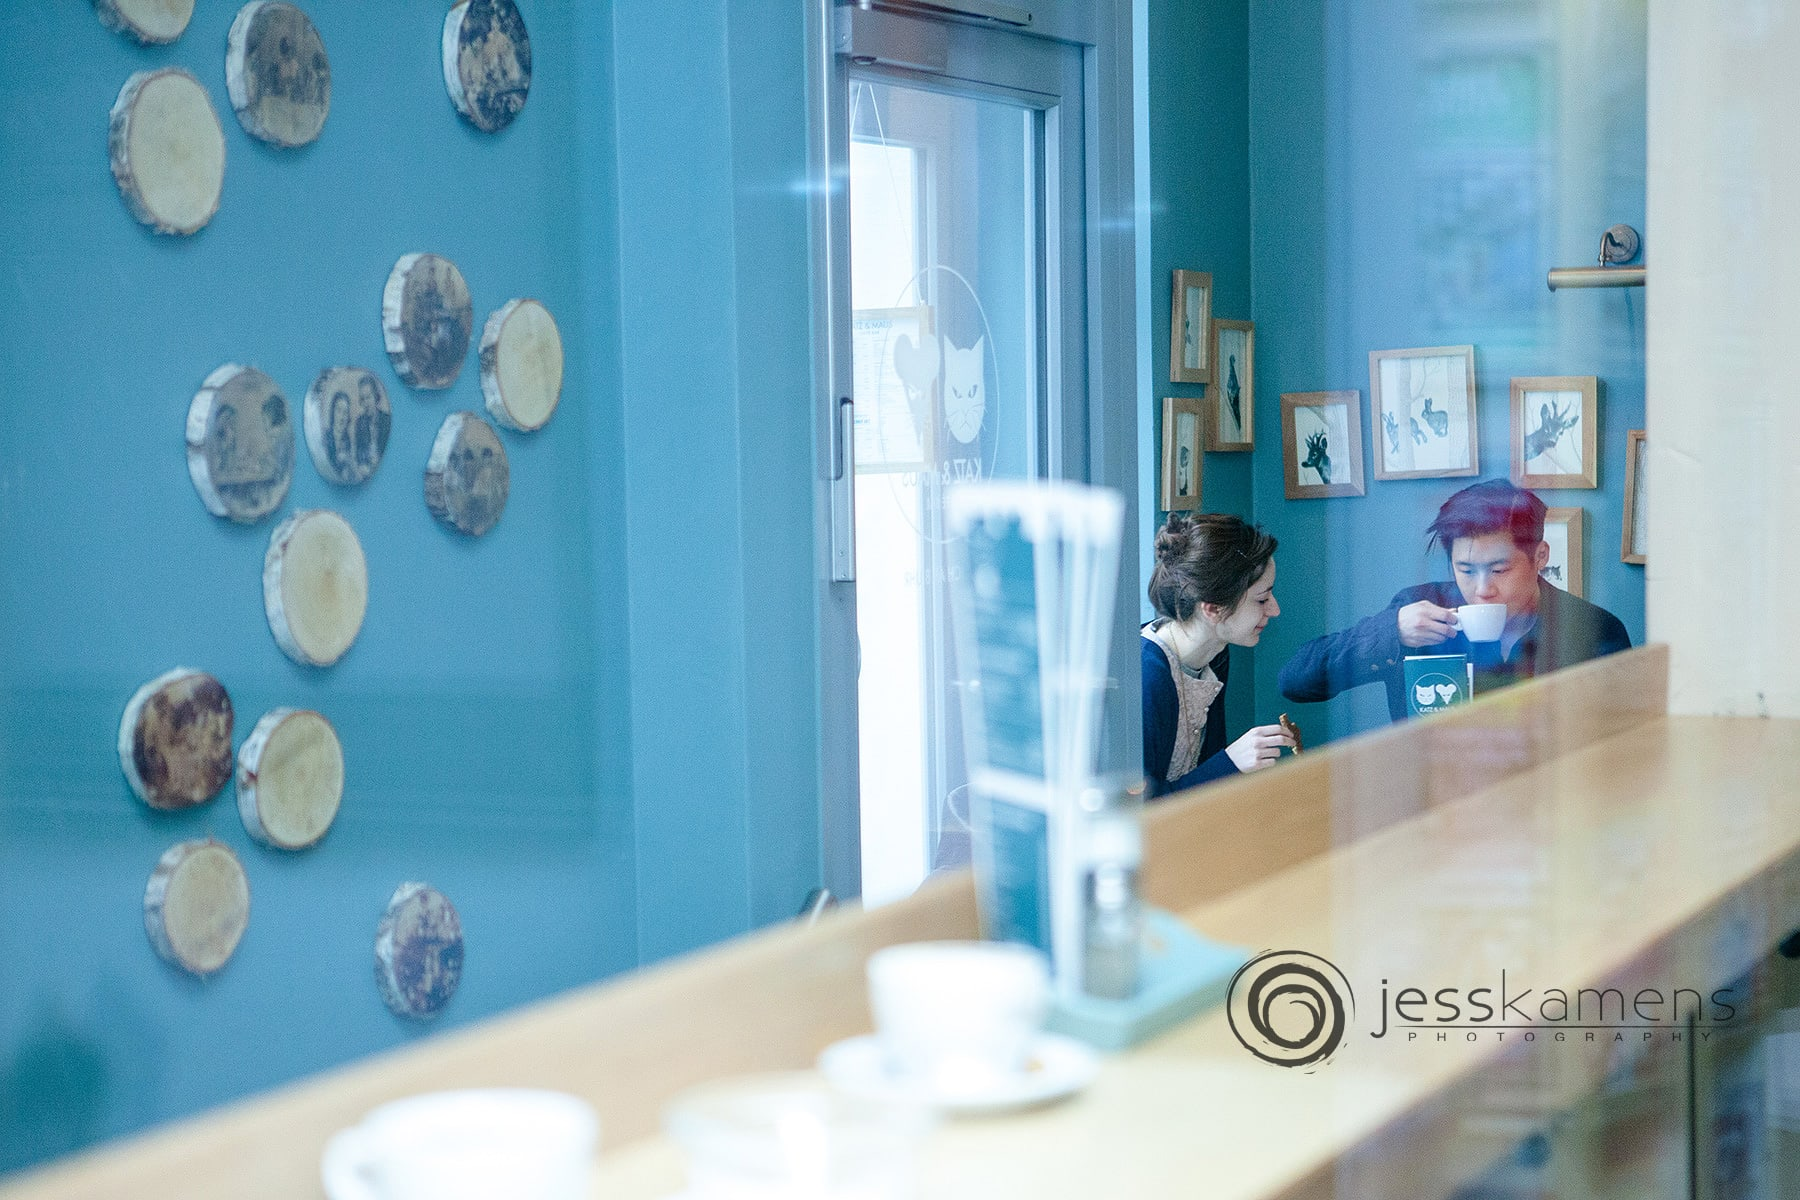 business branding image shows the inside of a cafe with 2 people drinking coffee